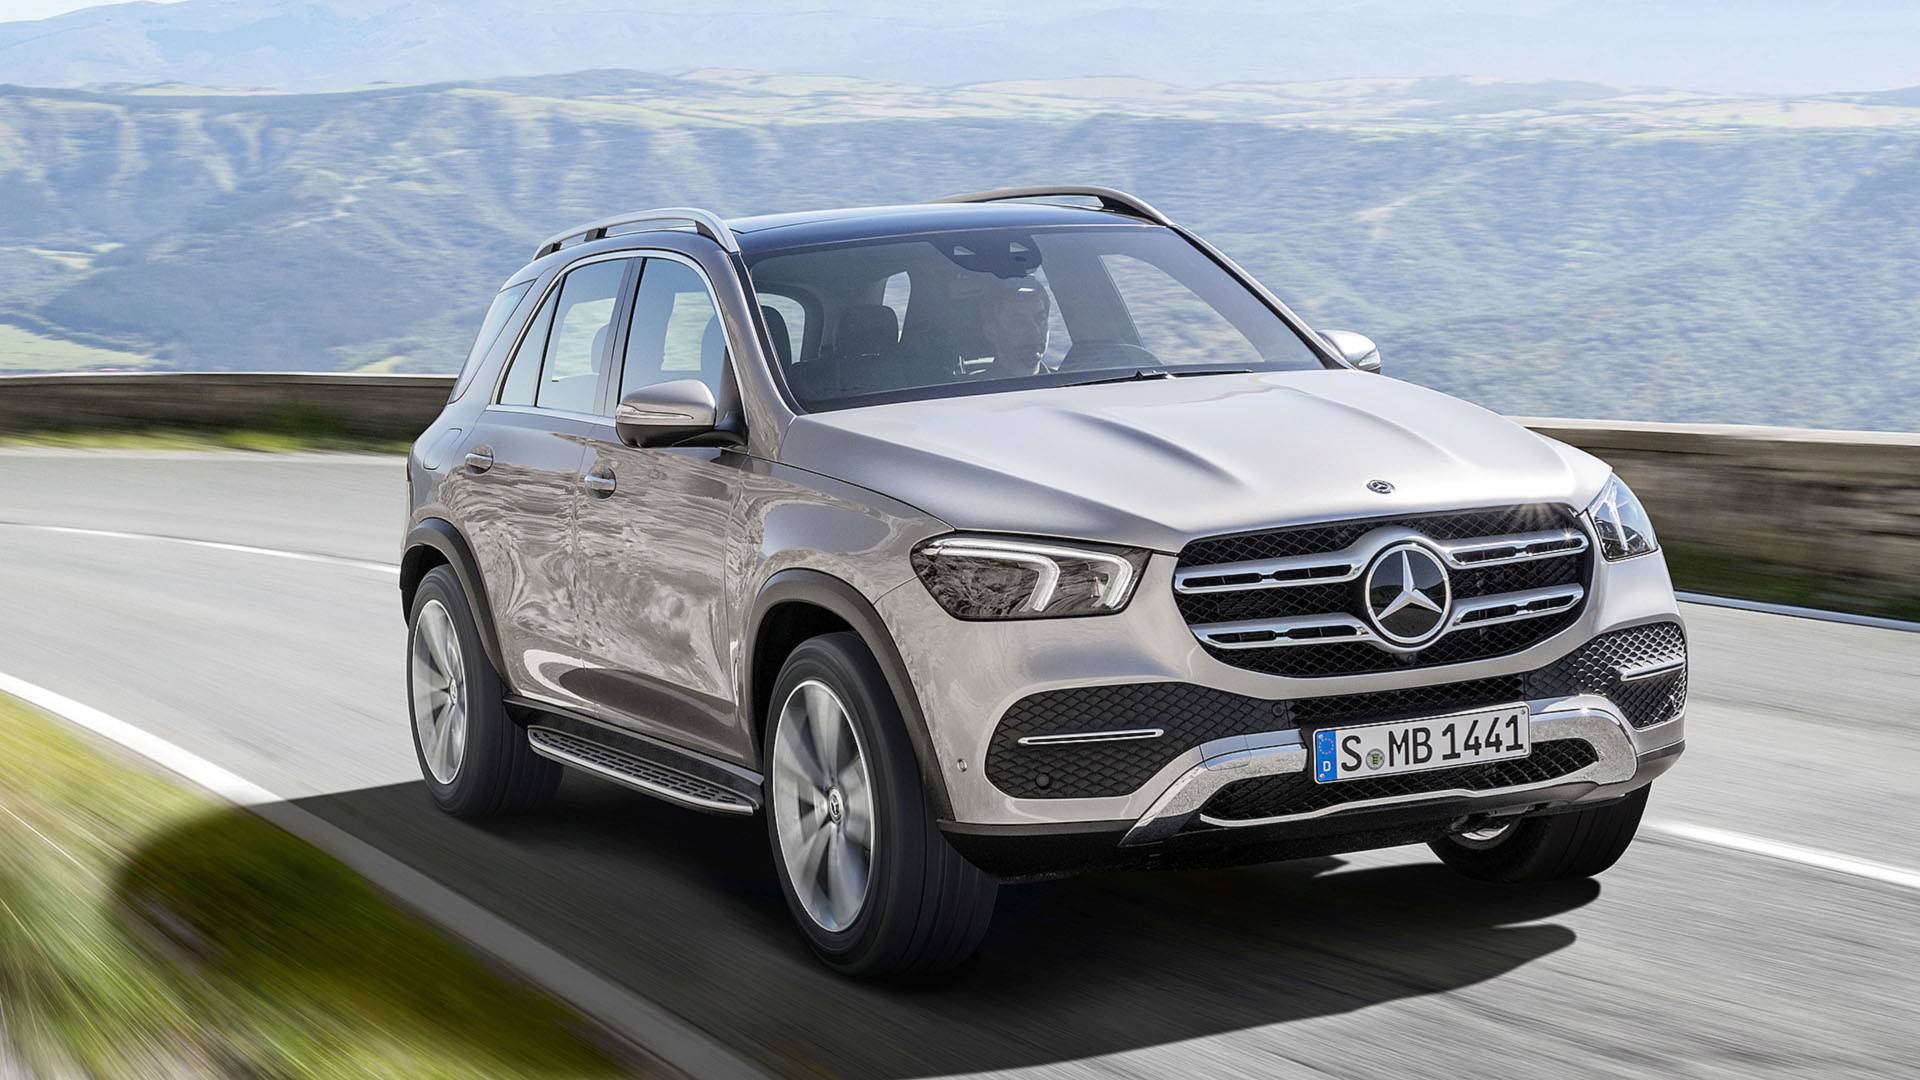 2018 Mercedes GLE: Redesign, Changes, Price >> 2020 Mercedes Benz Gle Launches With Smoother Look Tons Of Tech